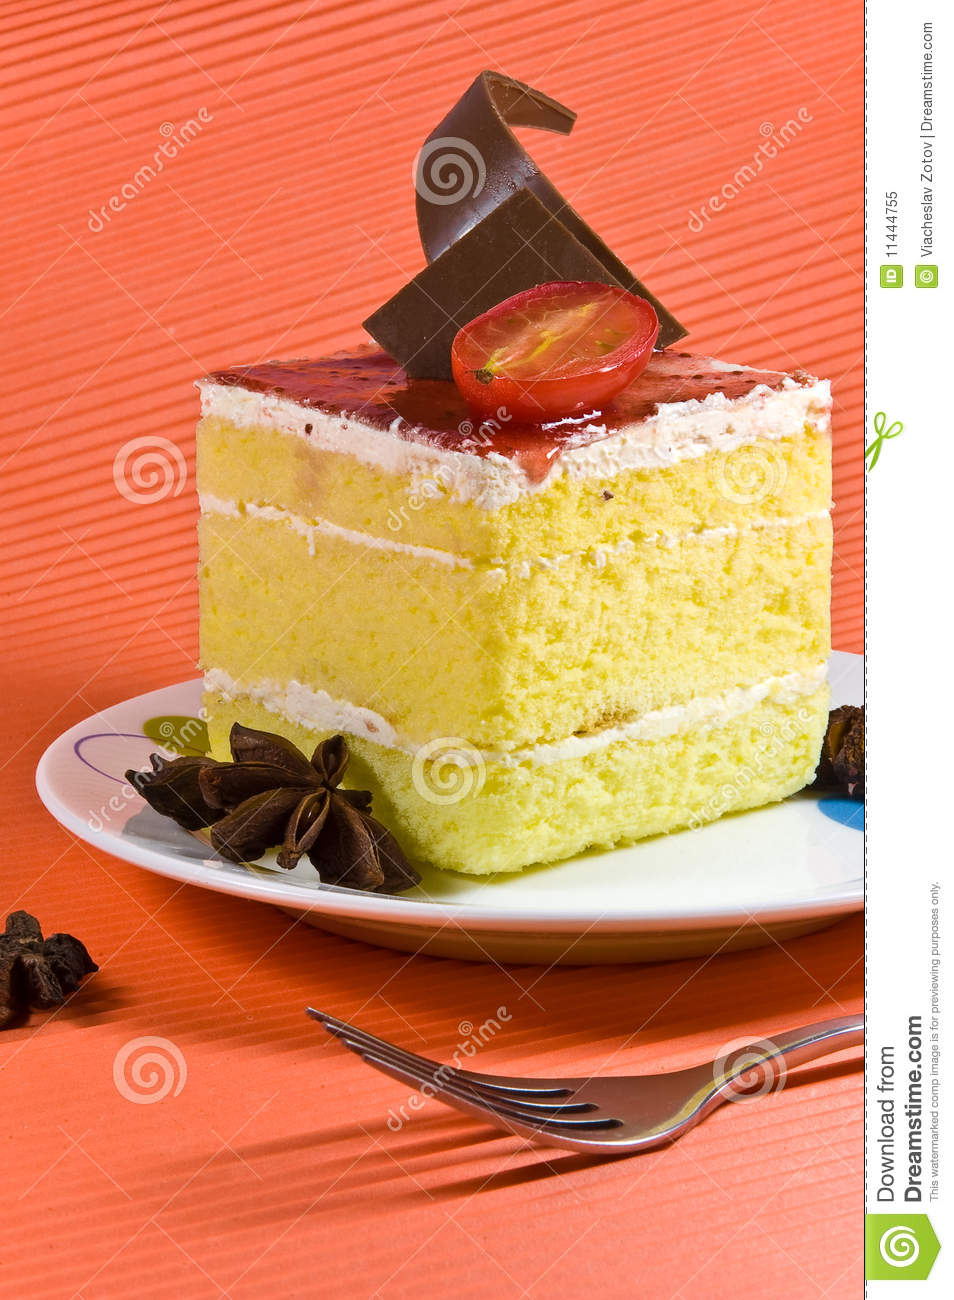 Cake With Cream Layer : Tasty Yellow Cake With Cream Layer And Chocol Royalty Free ...